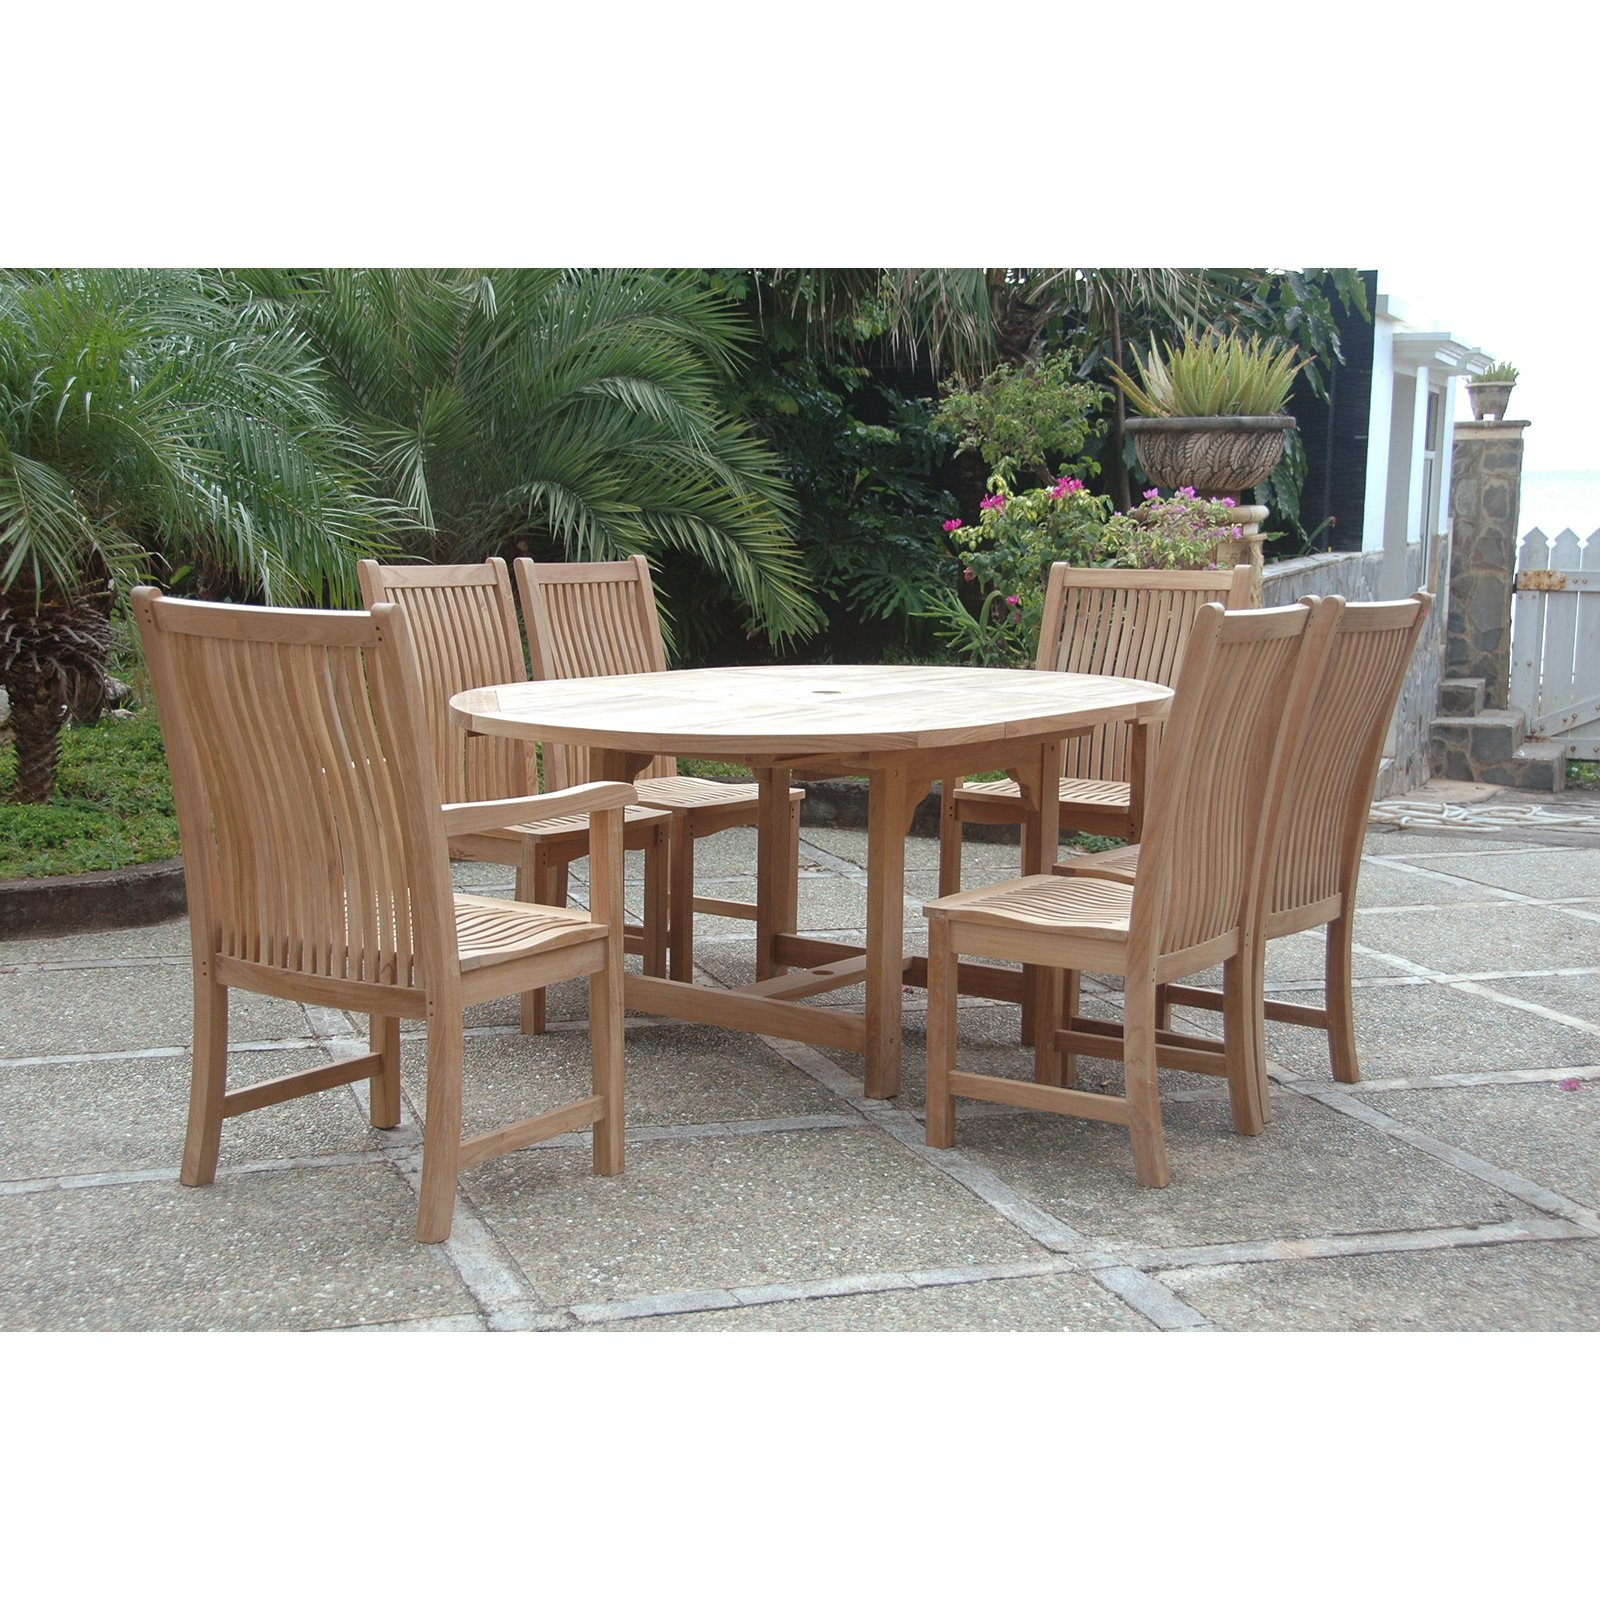 Click here to buy Anderson Teak Chicago 7 Piece Patio Dining Room Set.